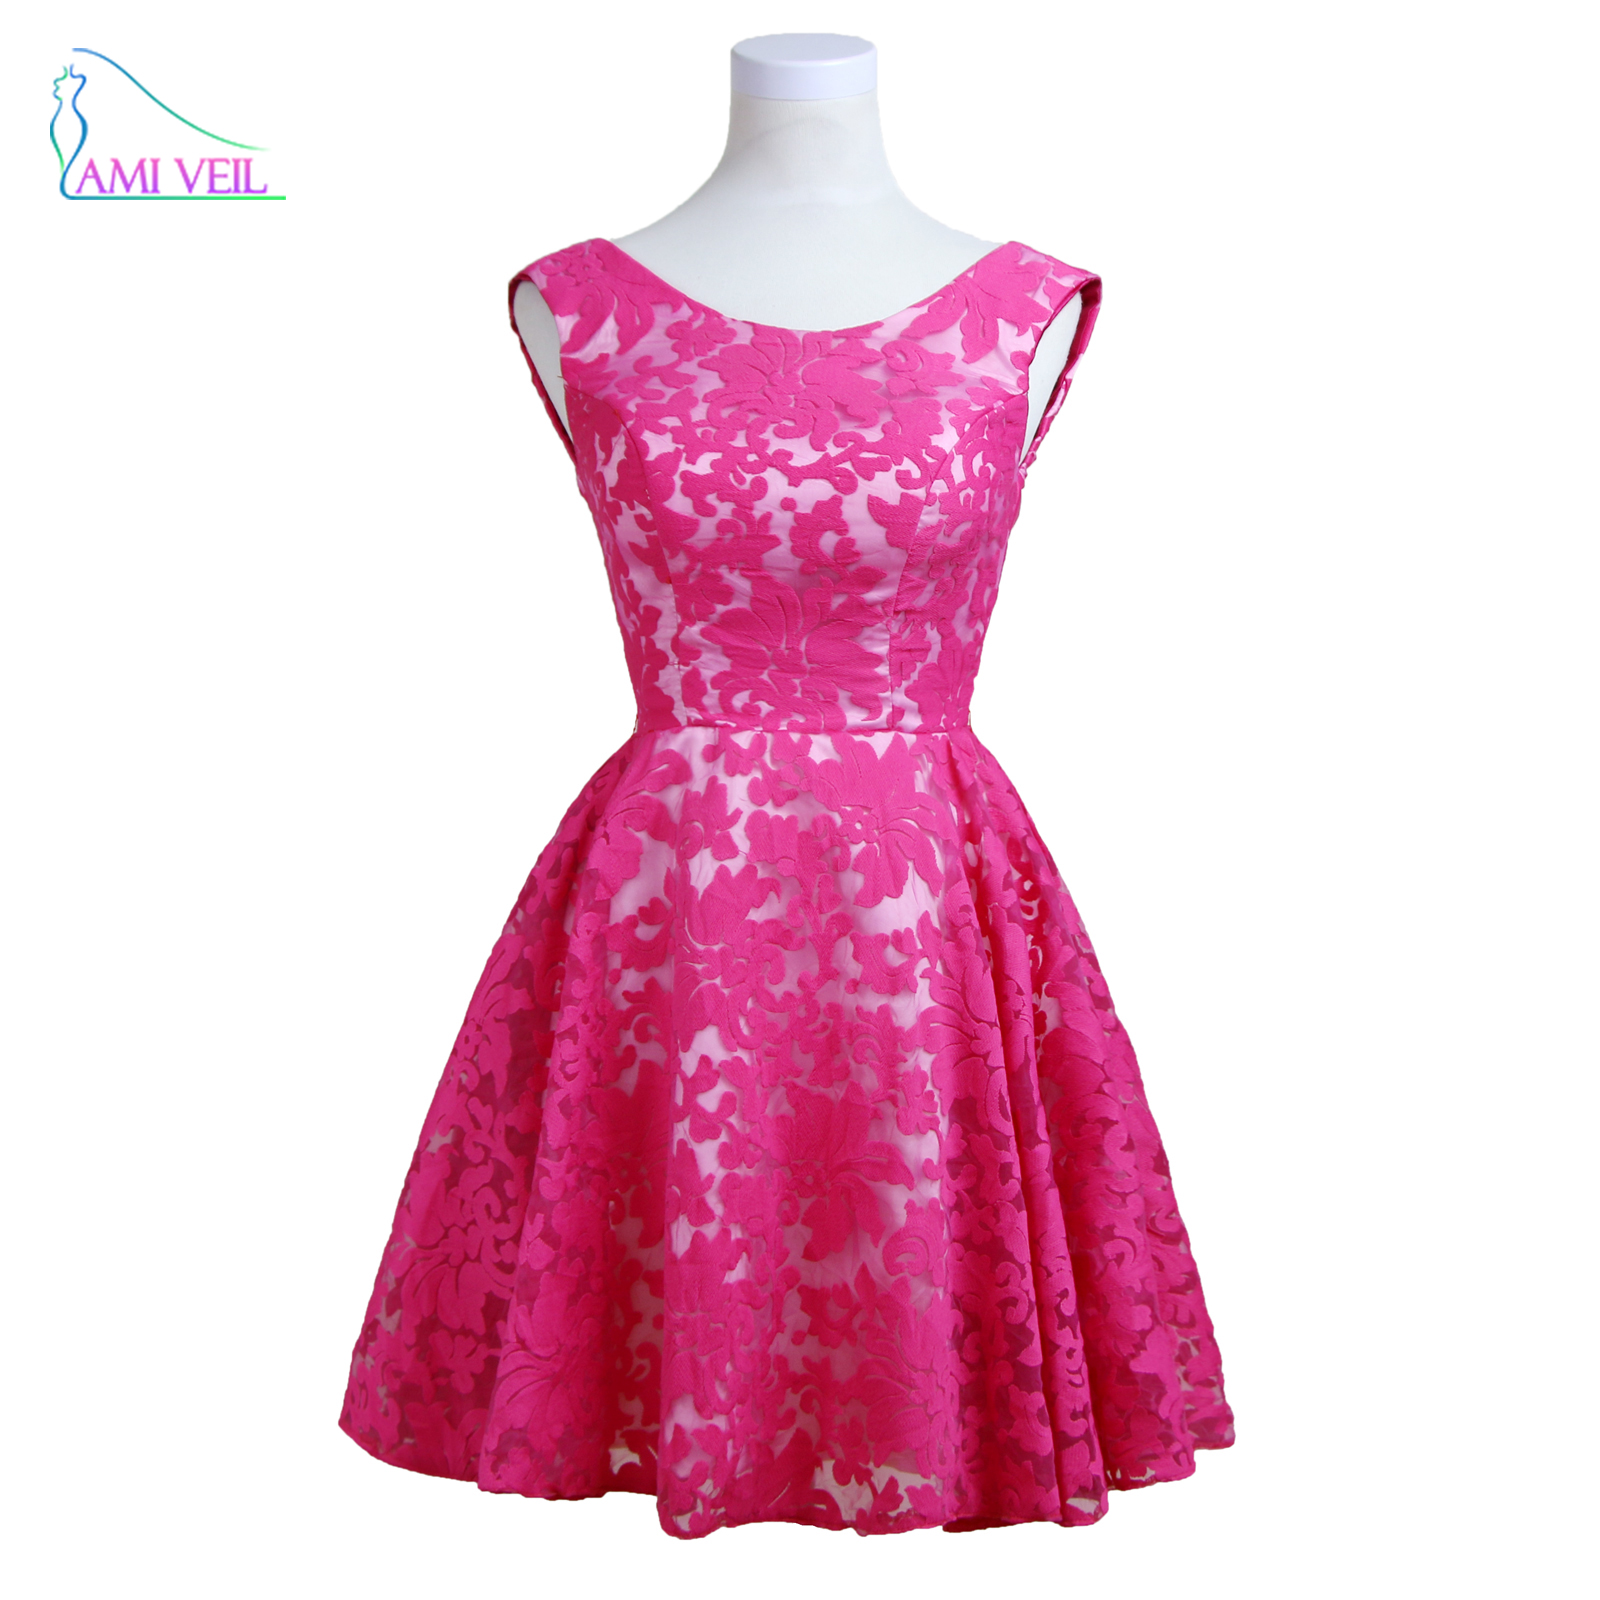 Welcome to Buy Cheap Dresses for Women & Moms Free Shipping in bloggeri.tk Could Find more New styles of Fashion Moms Dresses Here,Next day Delivery available.